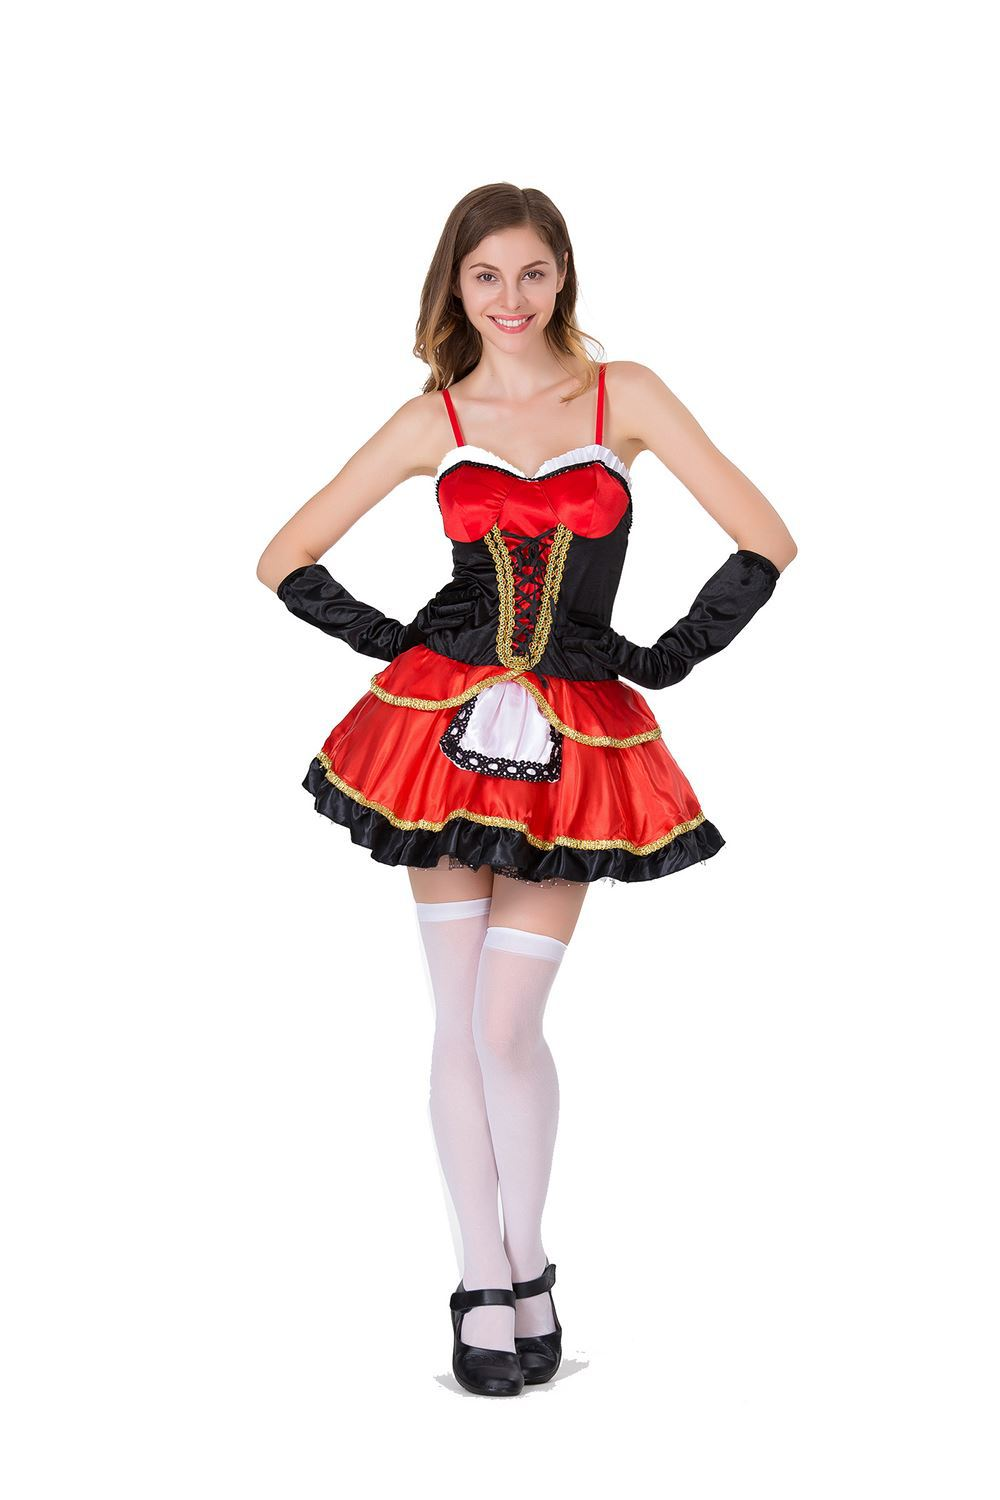 Live shot split Size Halloween Costume Little Red Riding Hood Princess Dress Cape Cosplay role play